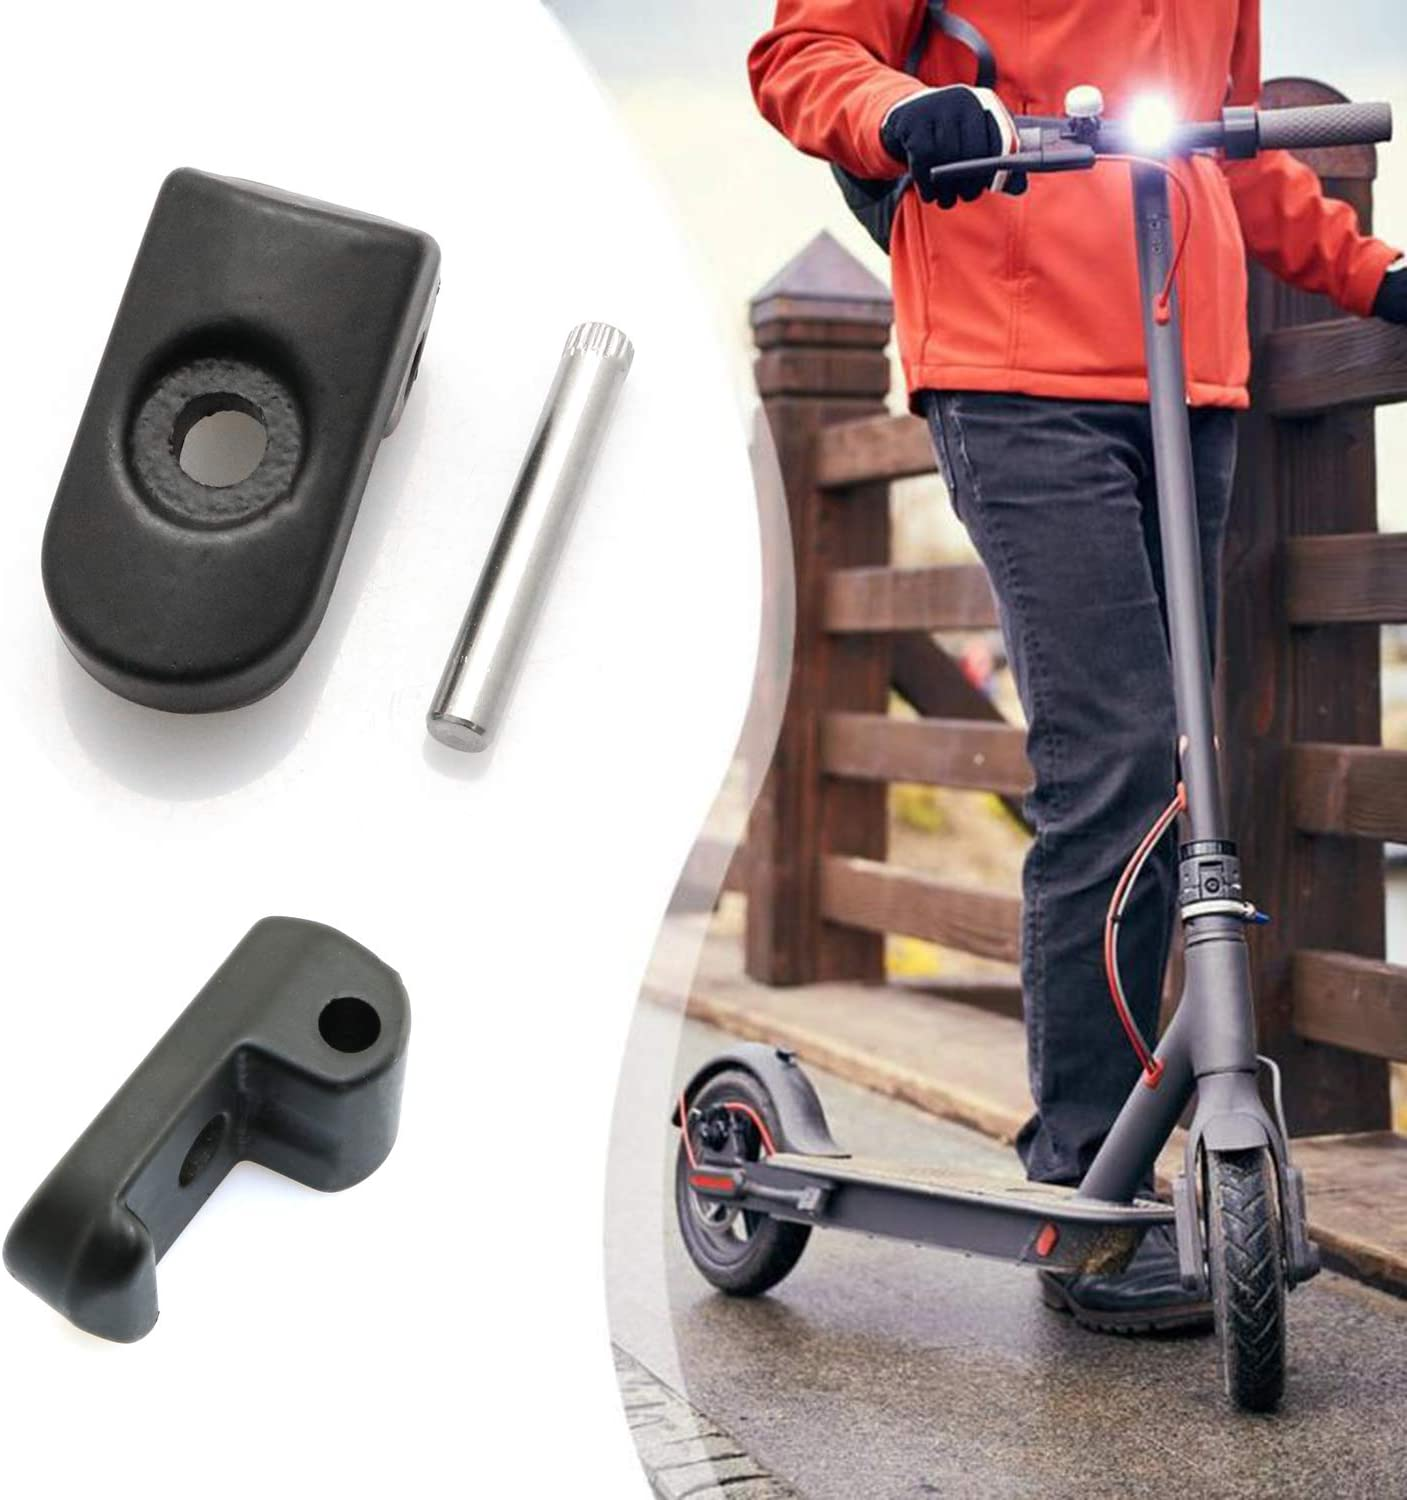 Alomejor1 Universal Folding Lock Buckle with Safety Pin High Hardness Folding Hook for XI-AO-MI M365//PRO Electric Scooter